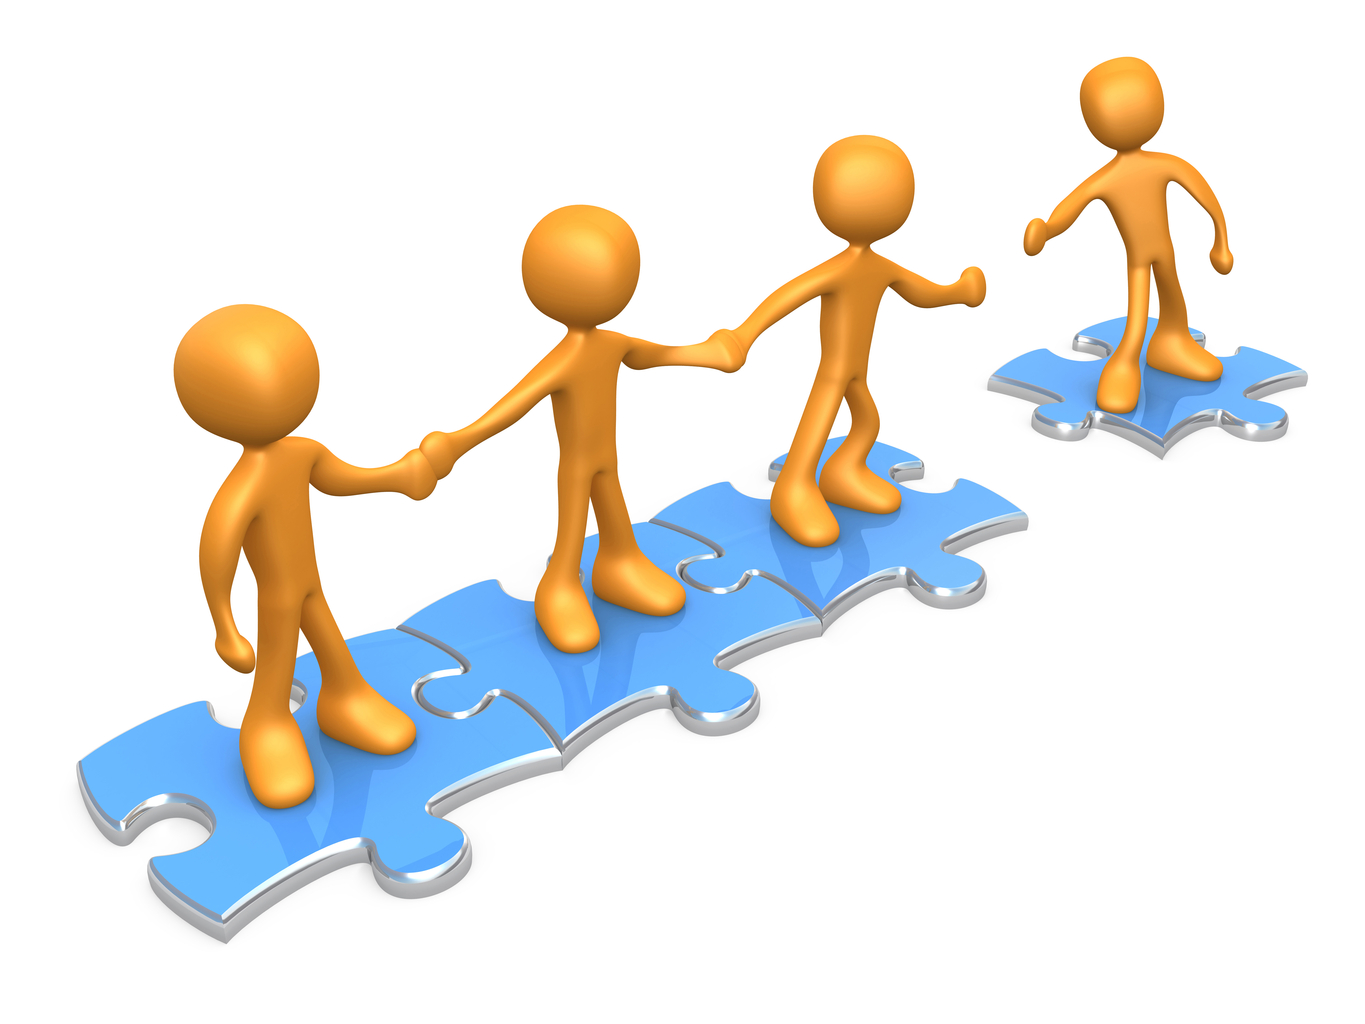 strategies to enchance team cohesiveness in an In the new role as project benefit managers, they were to be part of and supplement the project team, which consisted of two team members and a project manager, all from headquarters' development department (see fig 1.